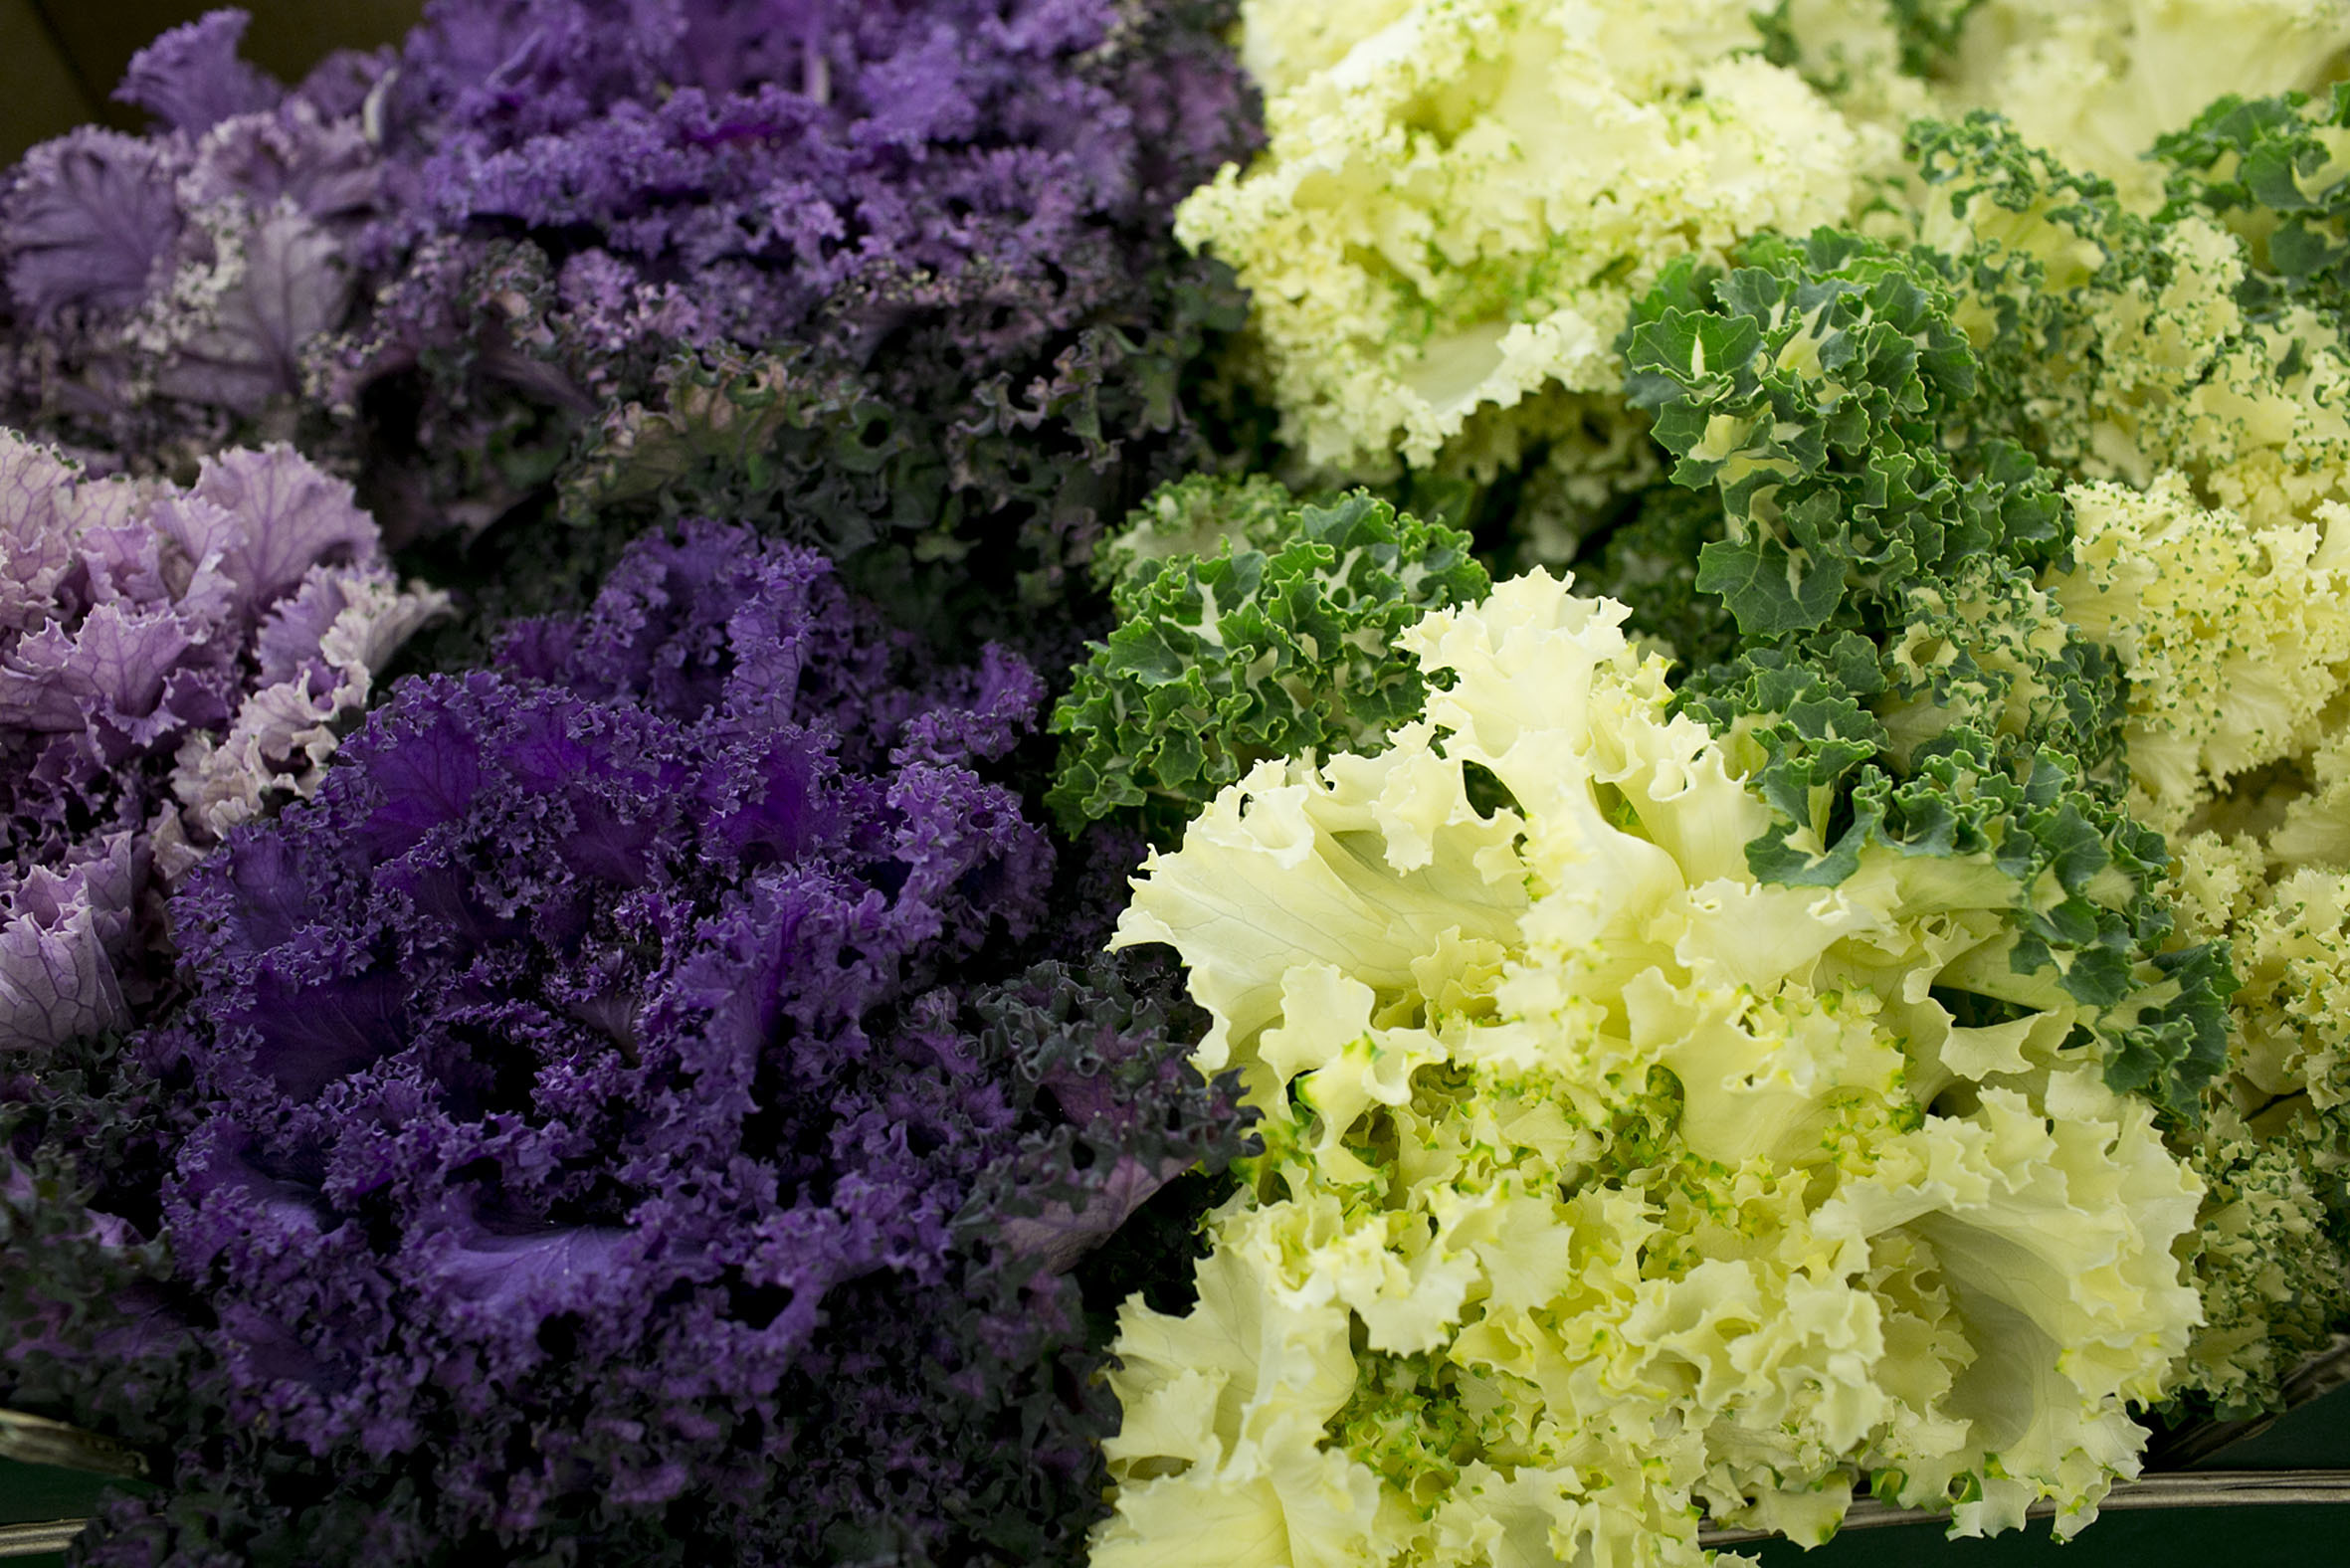 fruit-and-vegetable-market-report-february-2014-coloured-kale.jpg?mtime=20170922113403#asset:11343